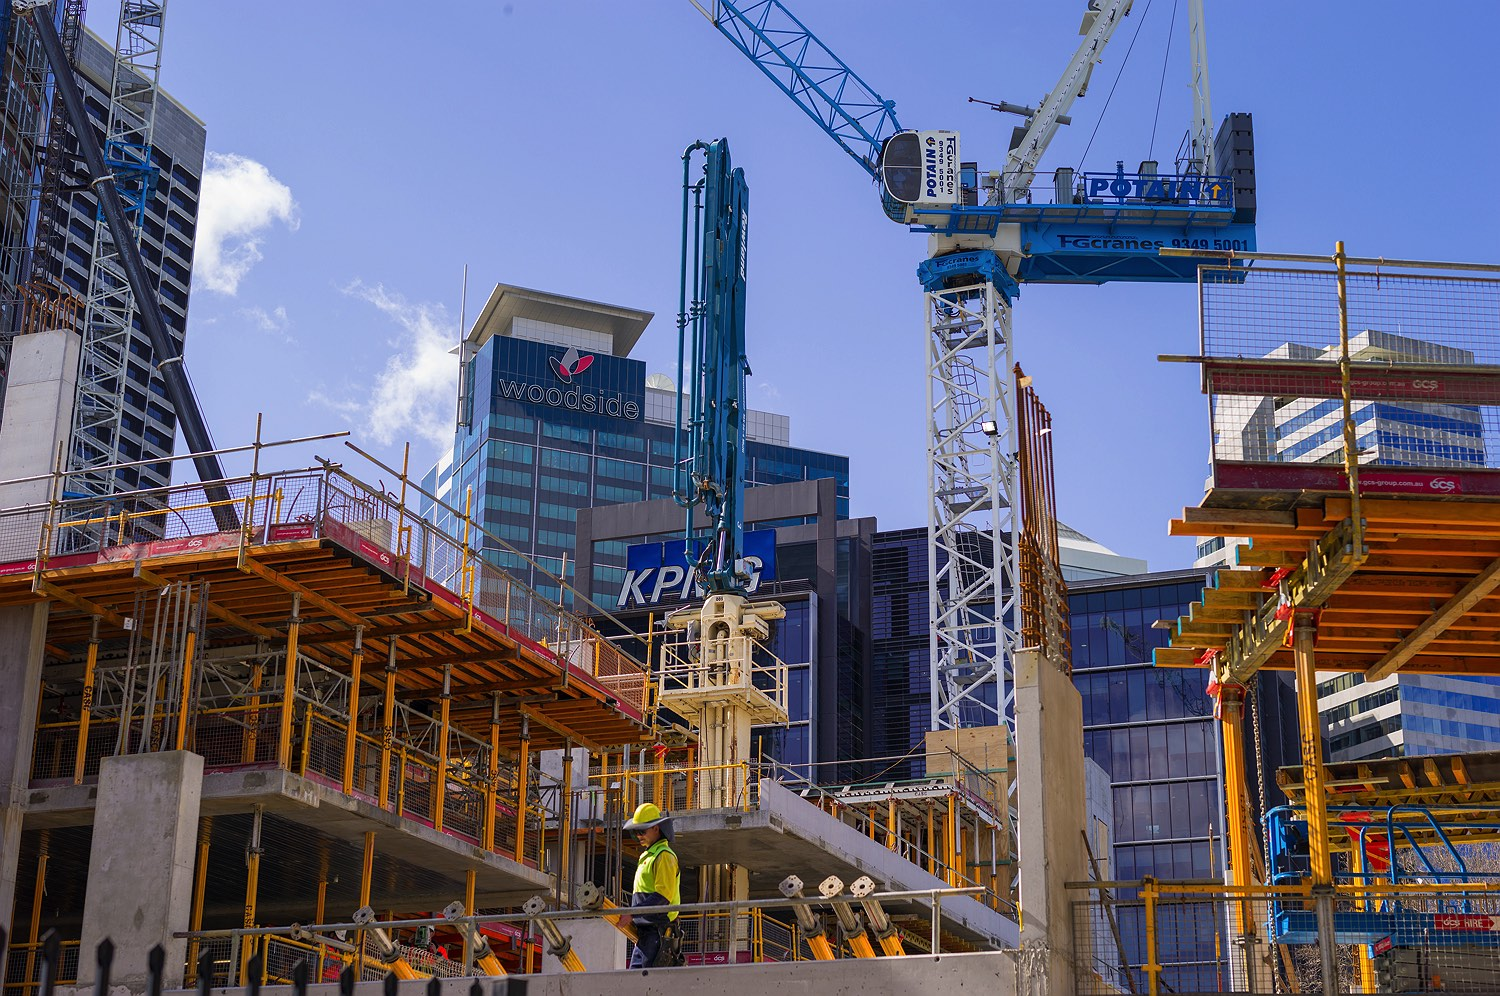 03-capital-square-perth-city-woodside-construction